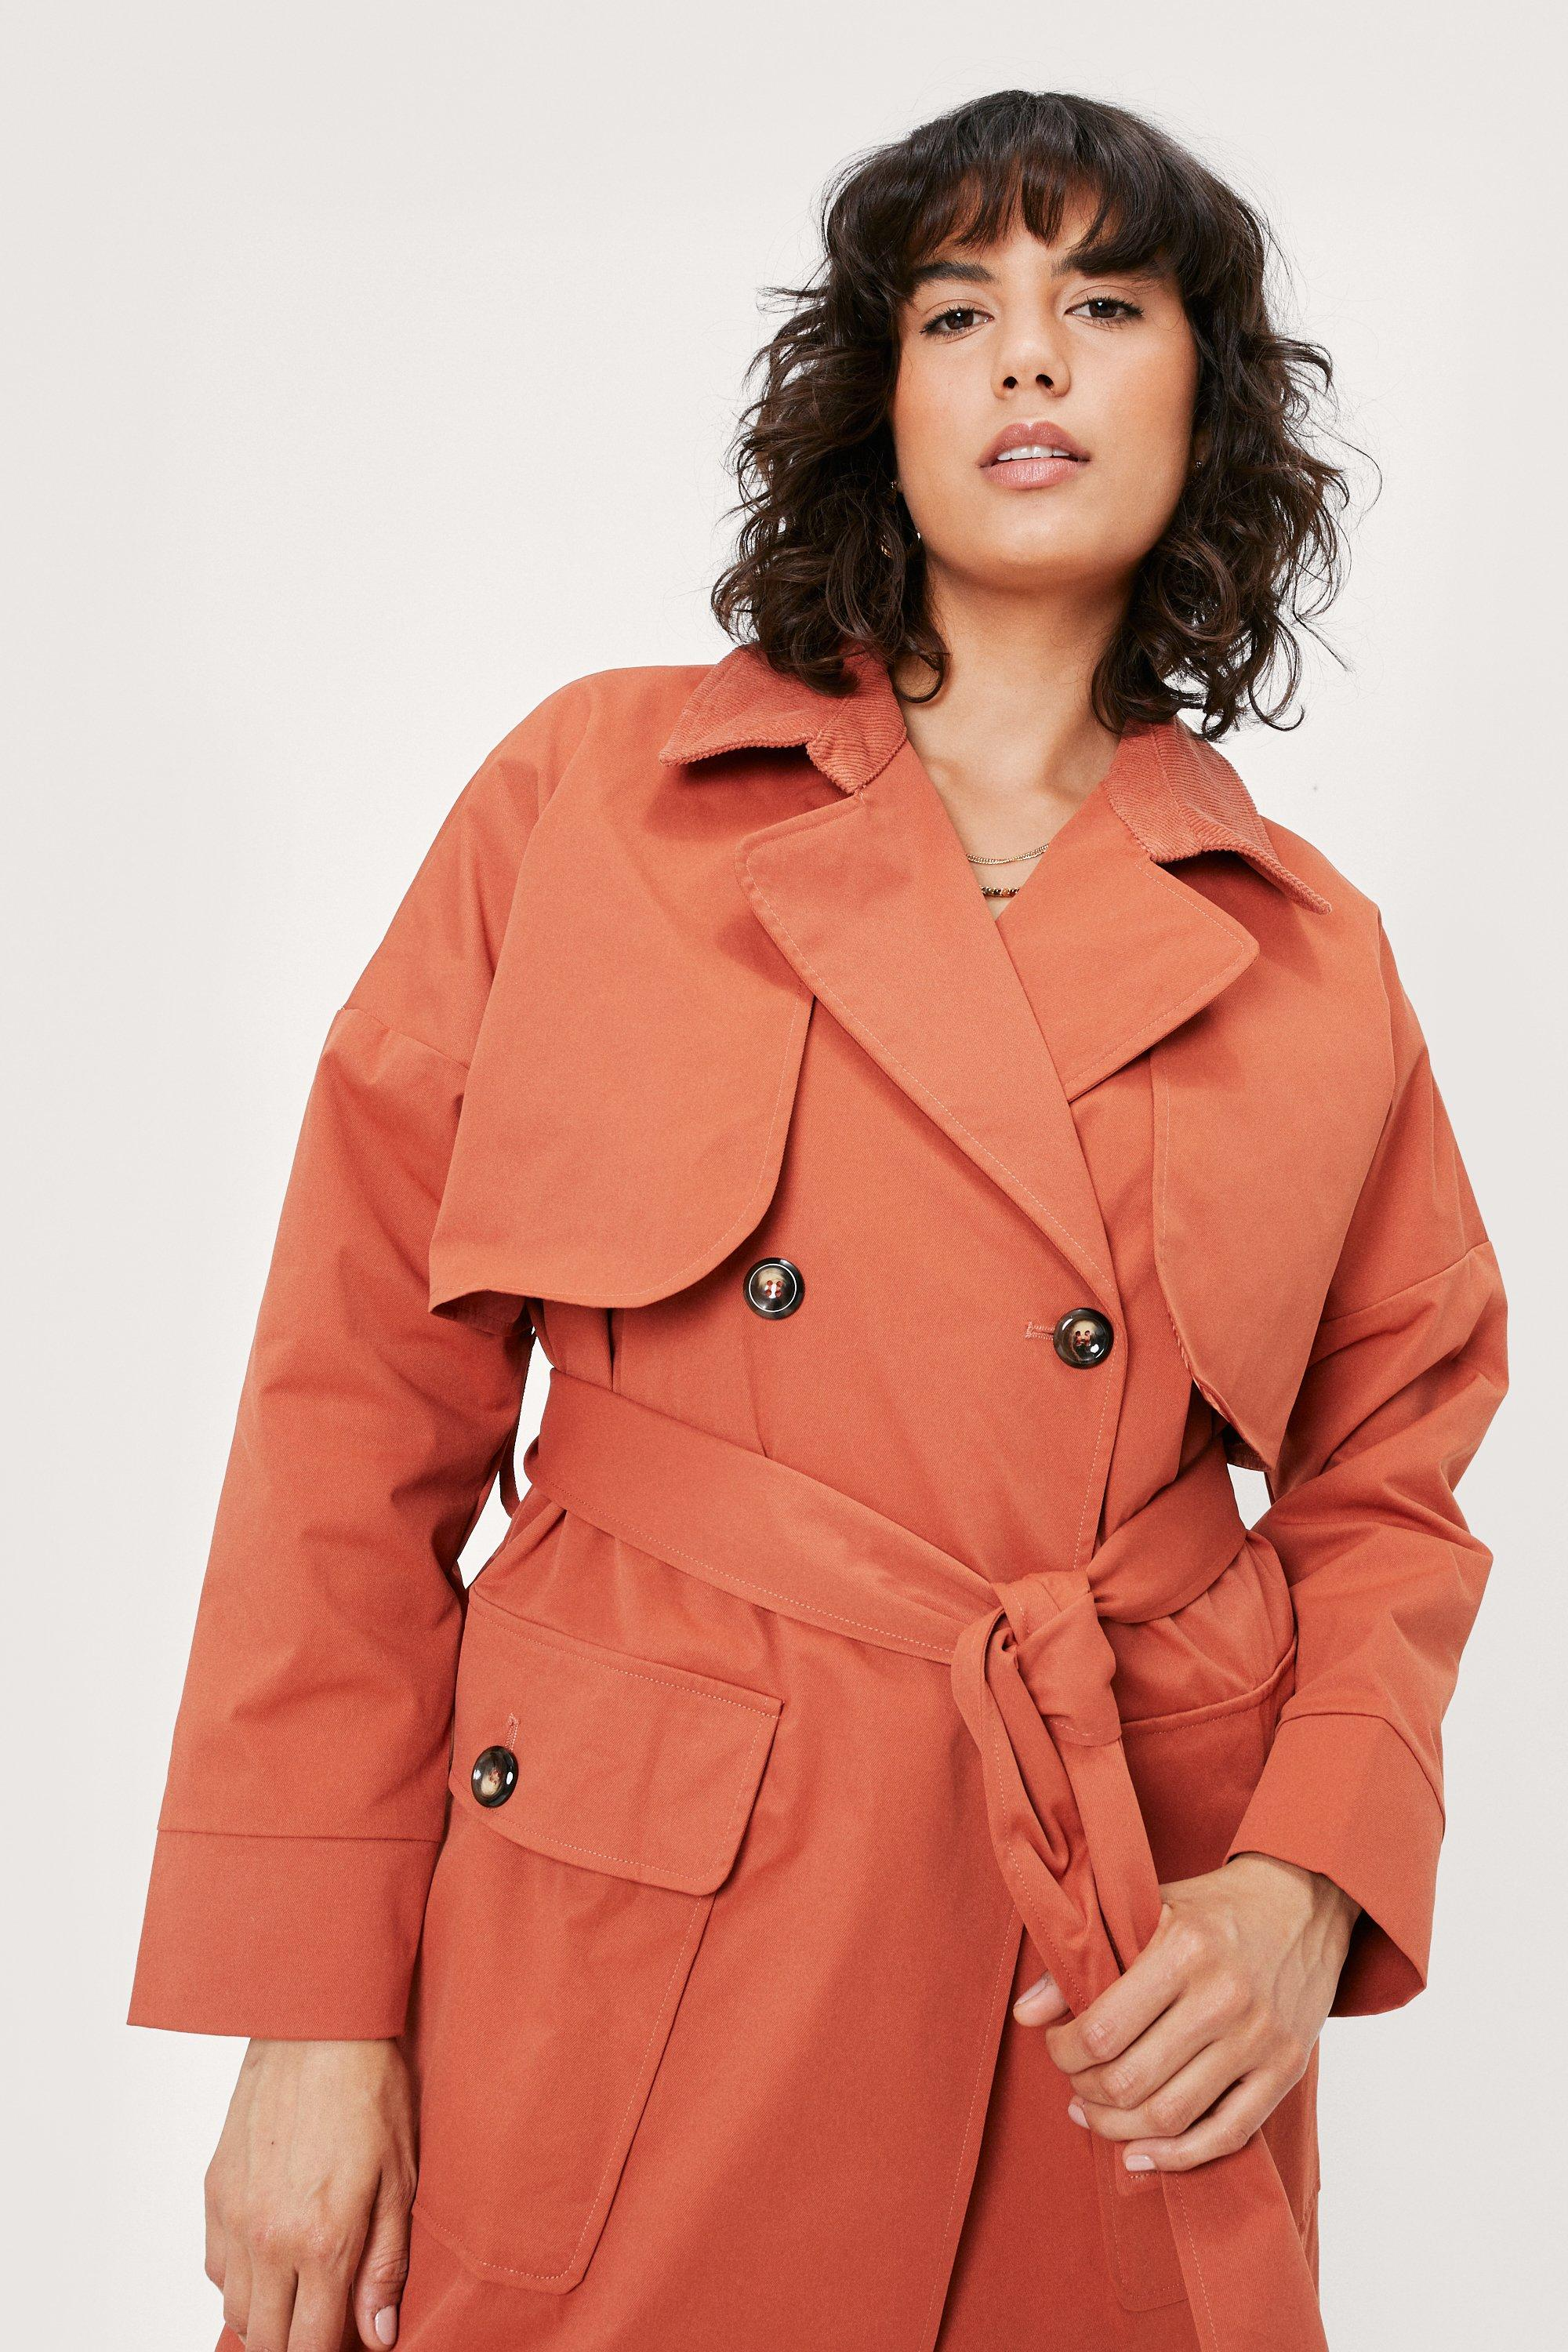 70s Jackets, Furs, Vests, Ponchos Womens Maxi Corduroy Collar Belted Trench Coat - Rust - 10 $68.00 AT vintagedancer.com